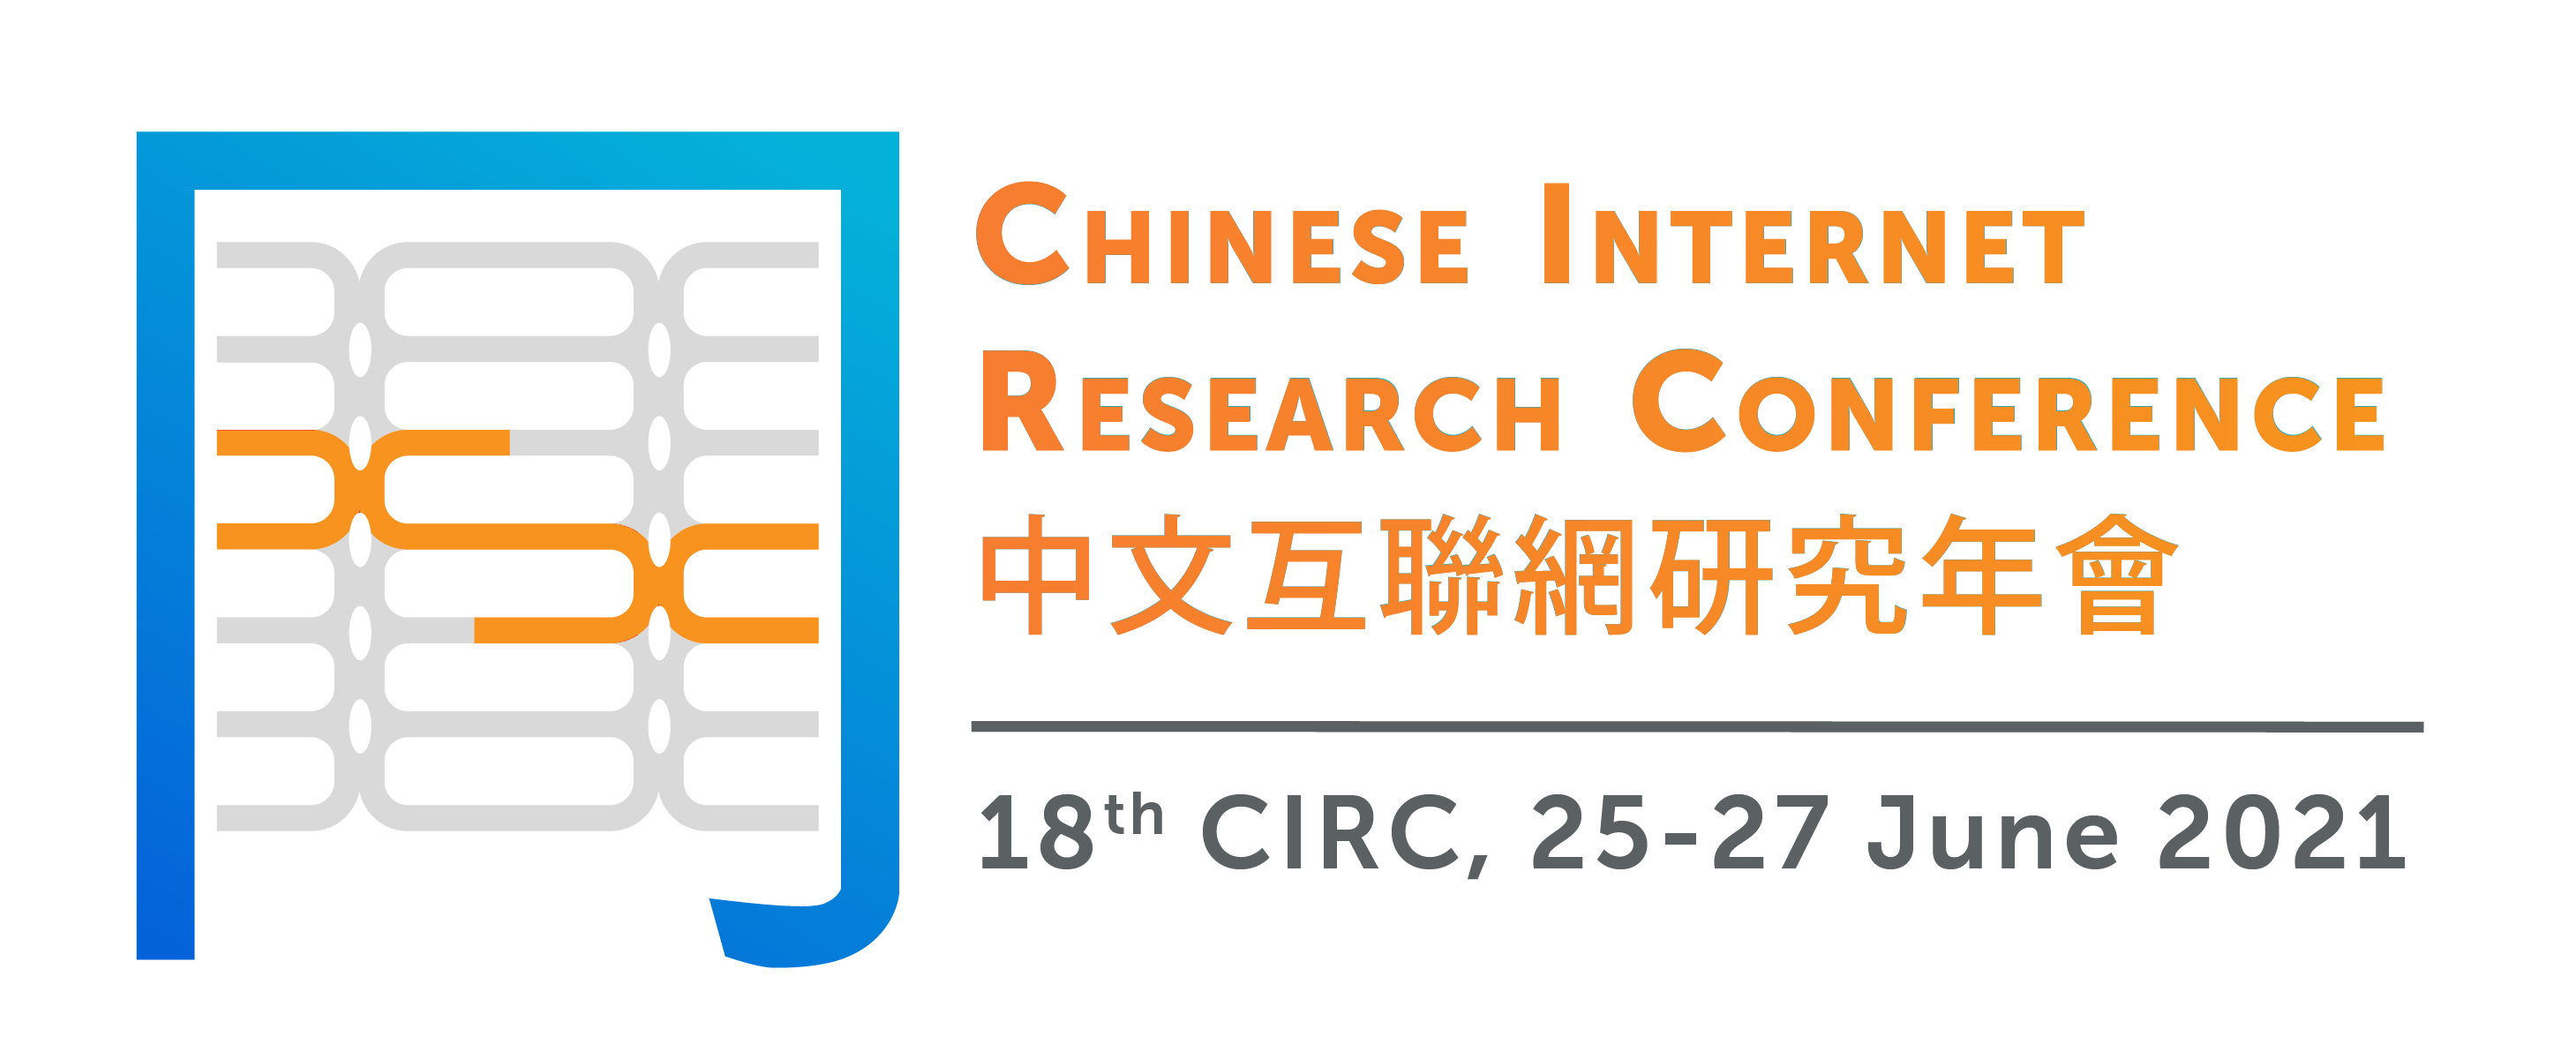 Chinese Internet Research Conference 2021 (CIRC18)